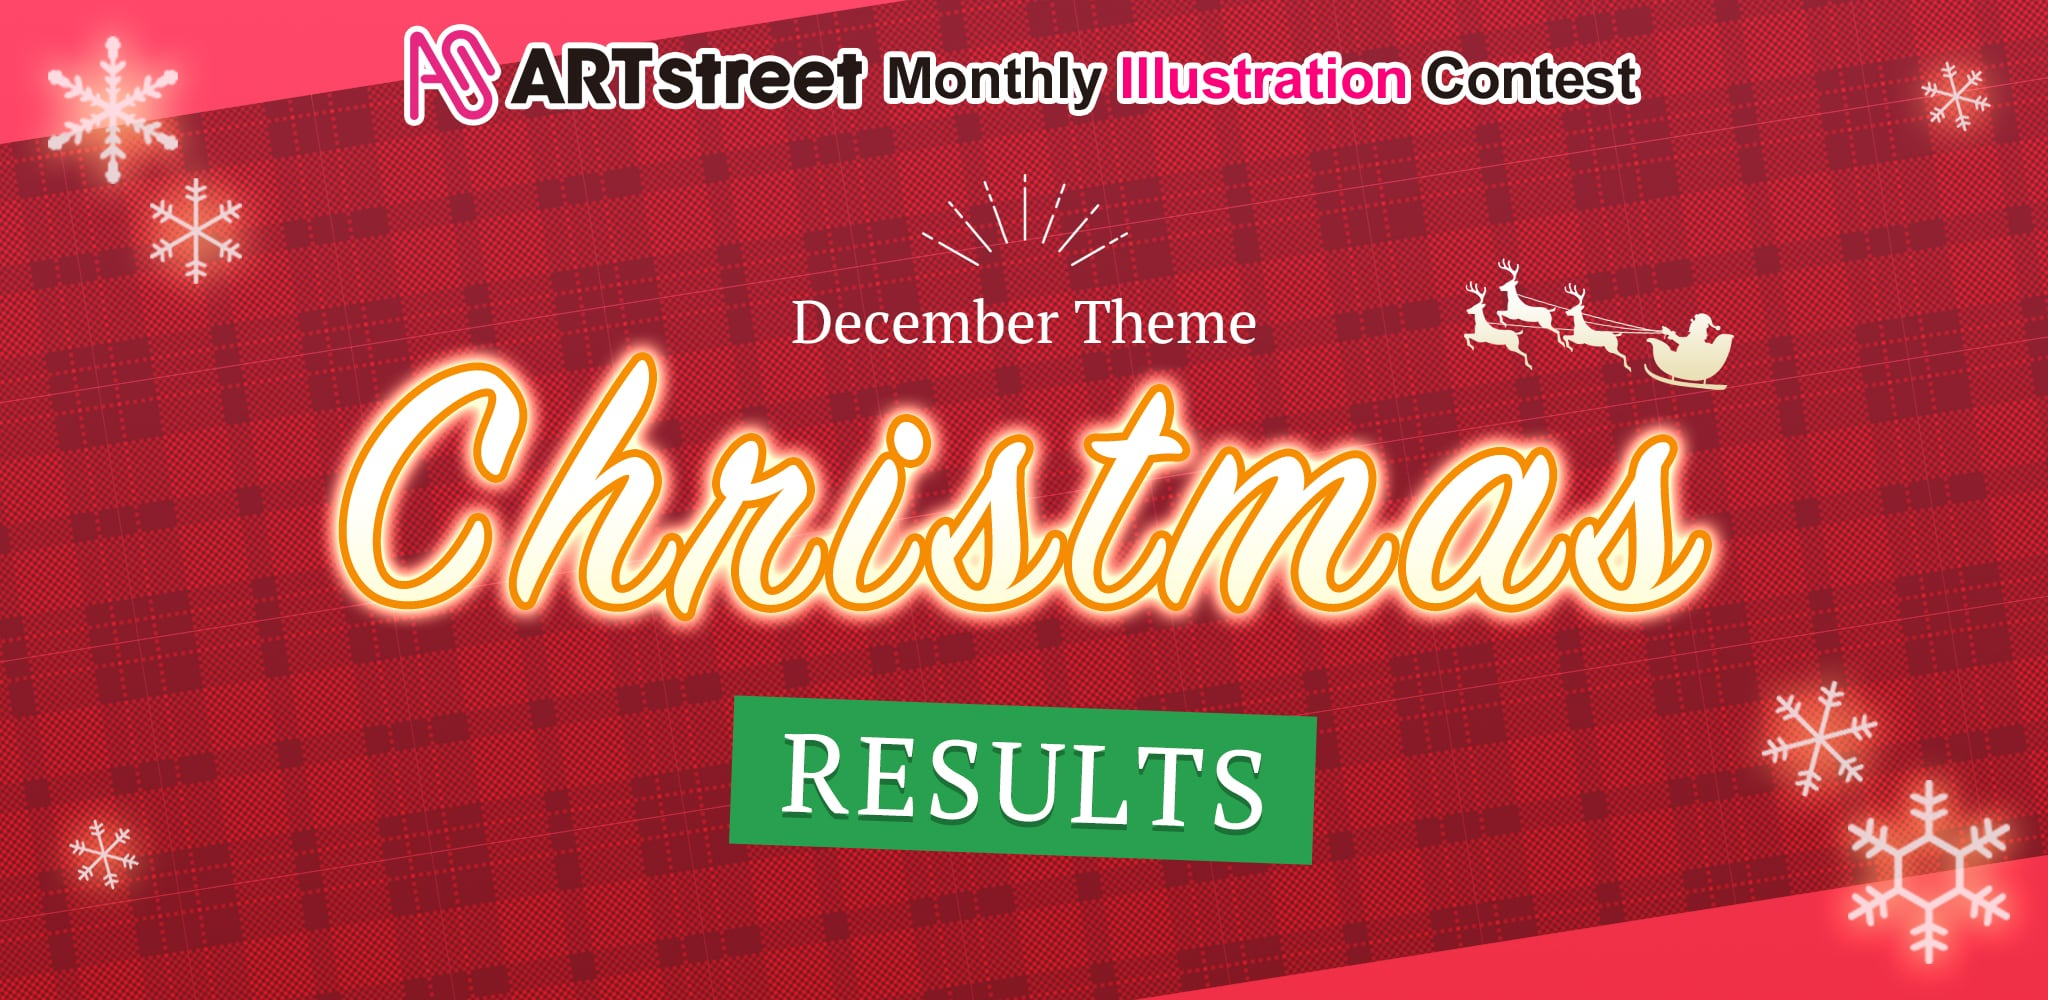 ART street Monthly Illustration Contest 201912 Results | Contest - ART street by MediBang